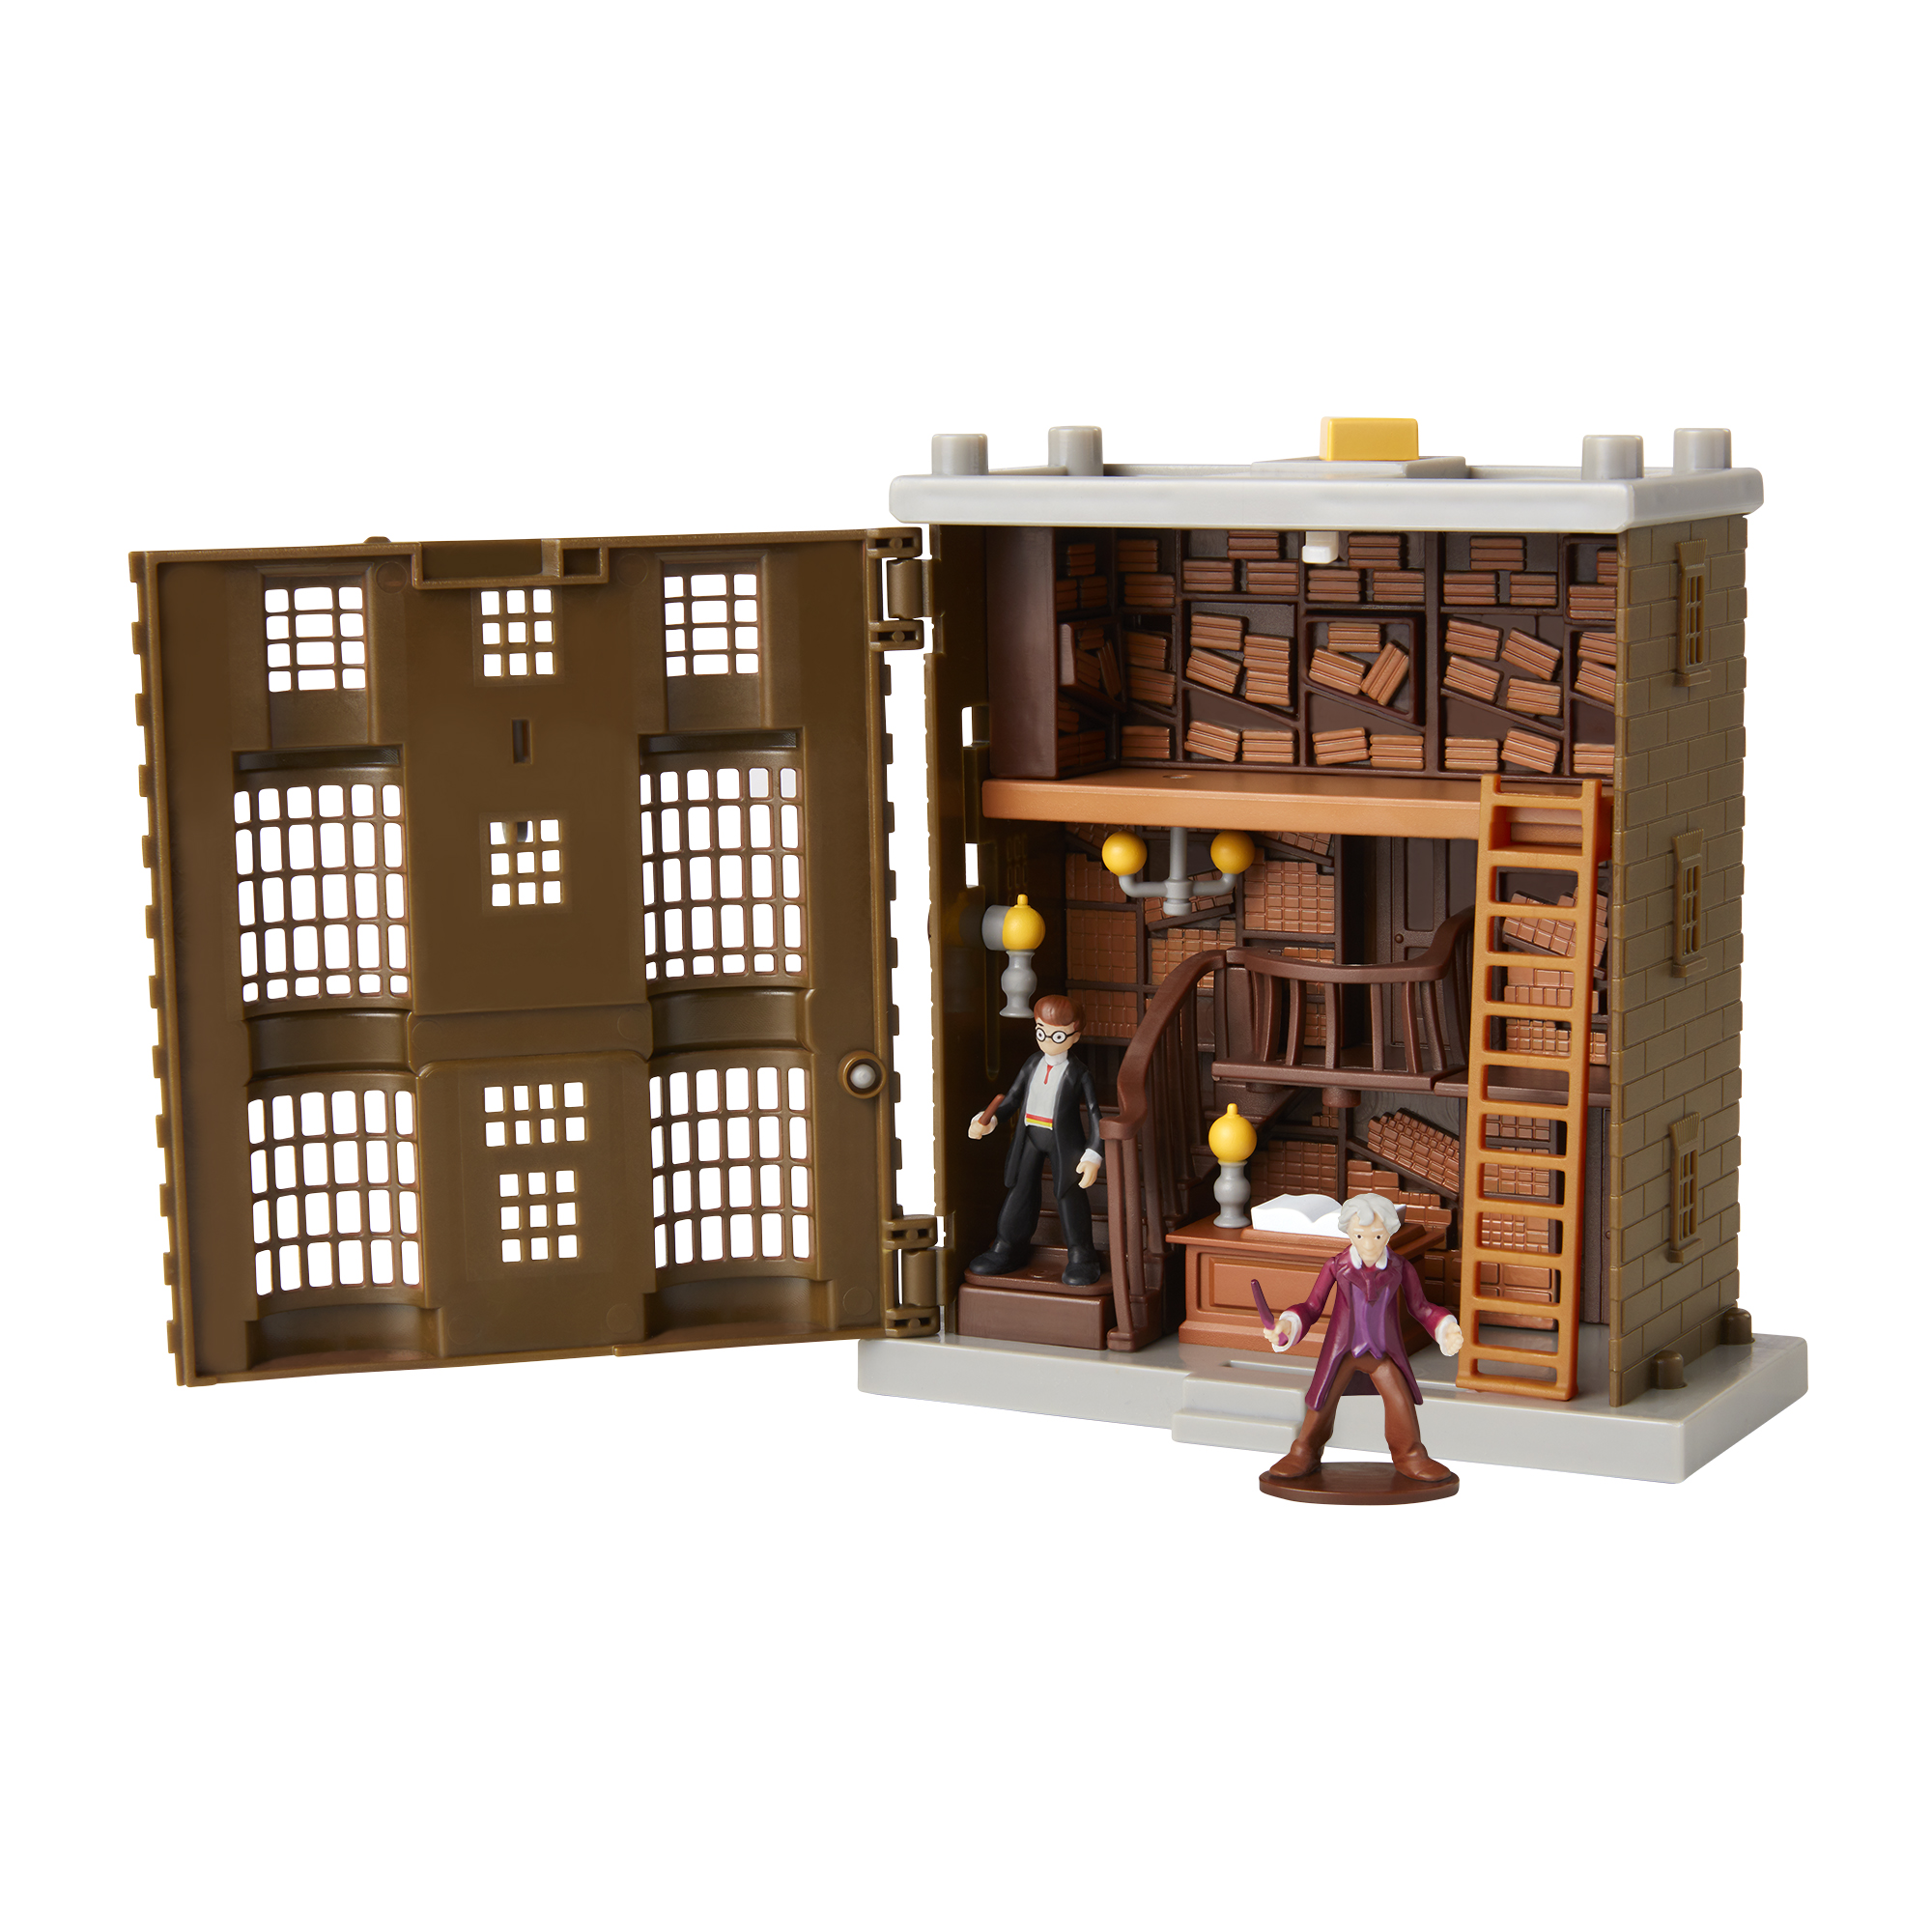 Ollivander's™ Wand Shop Mini Playset